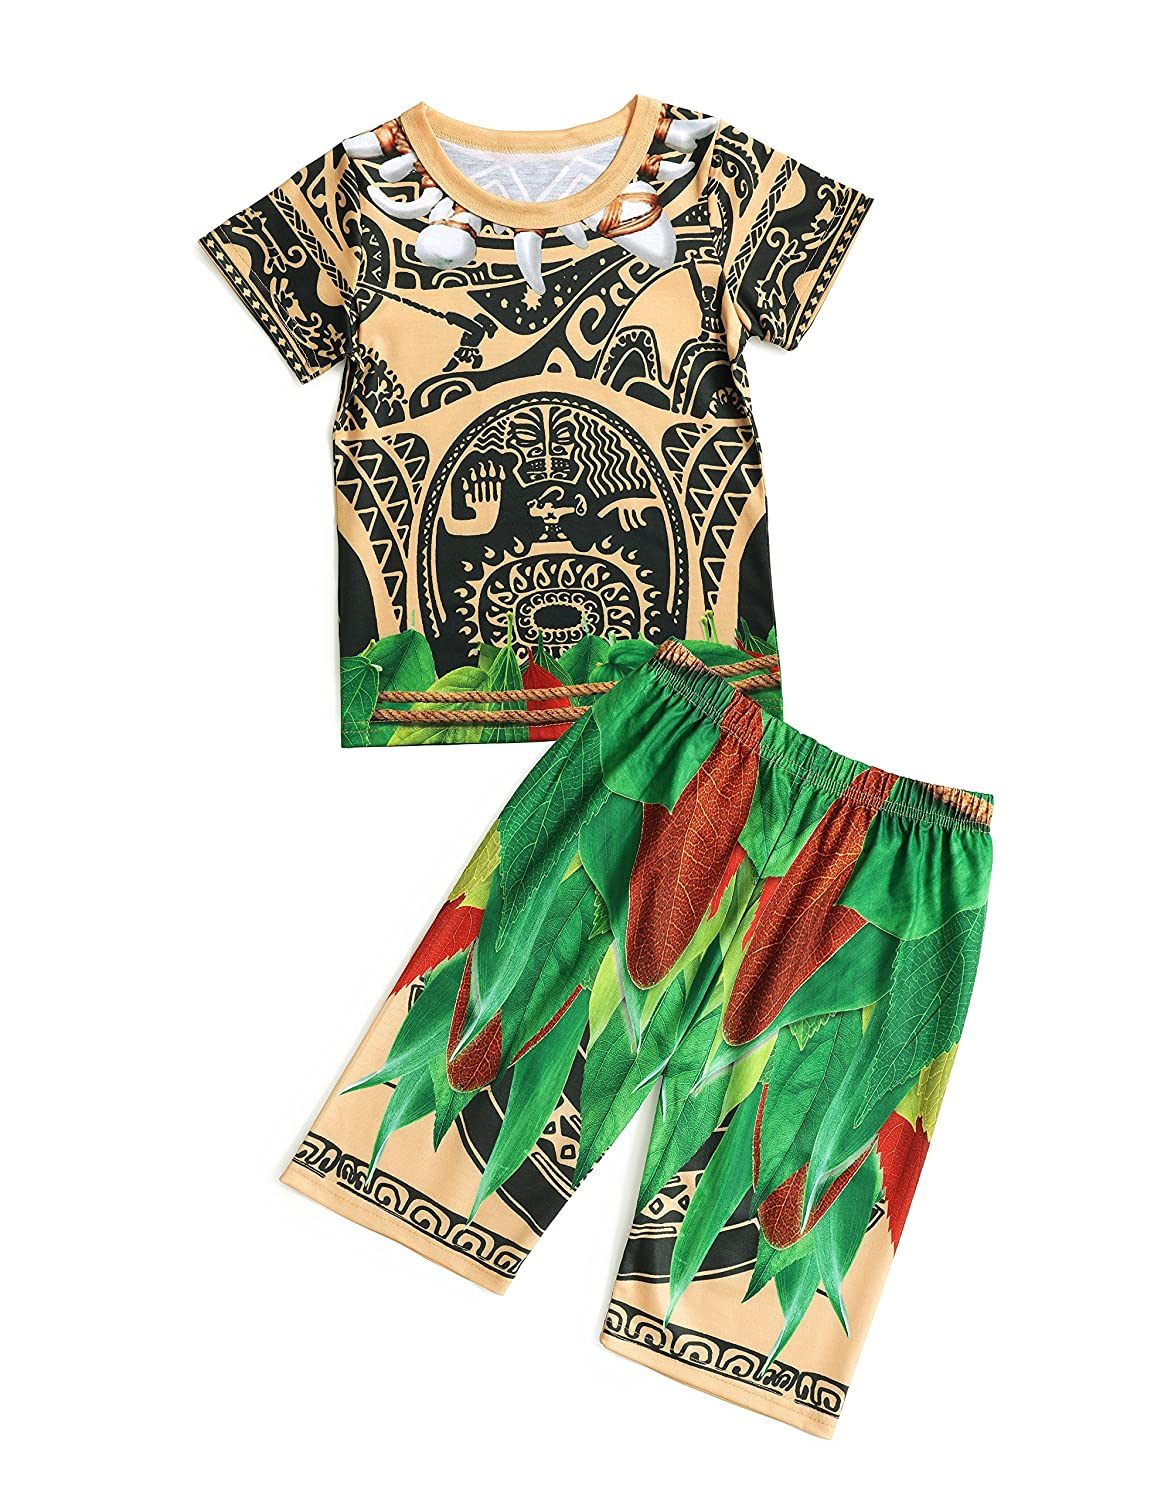 Maui Little Boys 3D Digital print Pajamas Sets 2 Piece For Kids Clothes Toddler Pjs Sleepwear